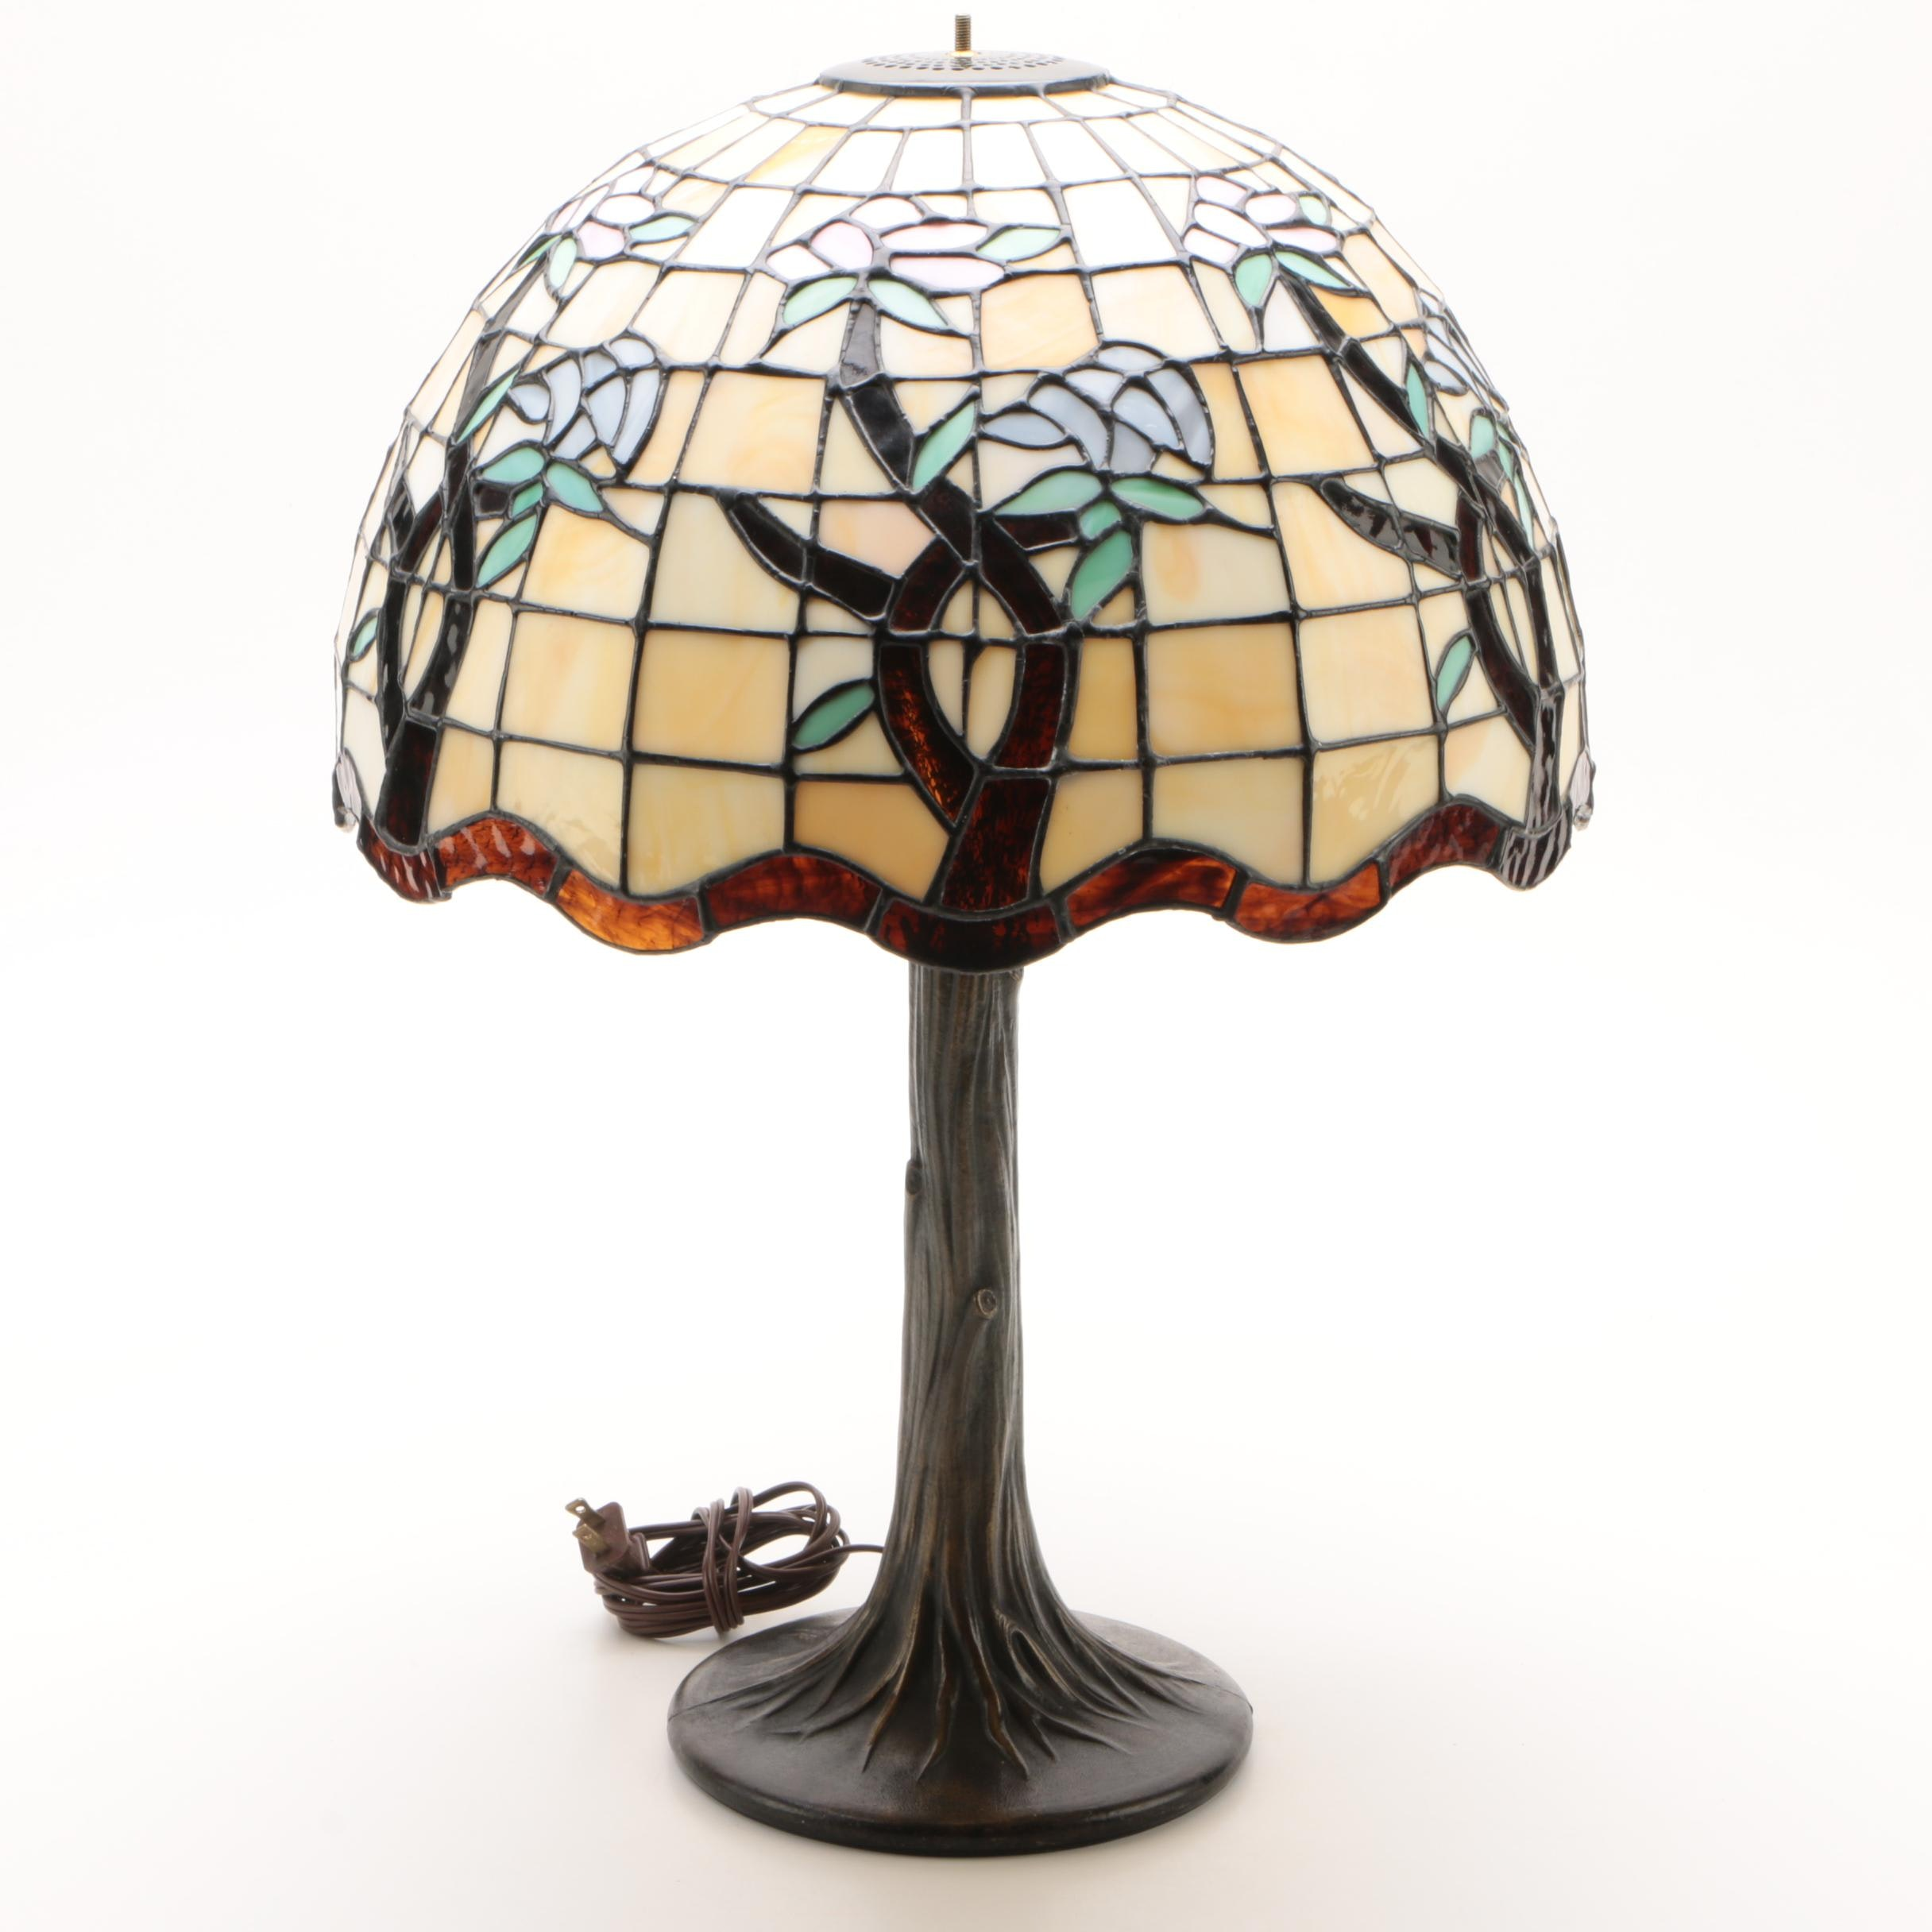 Cast Metal Table Lamp with Floral Stained Glass Shade